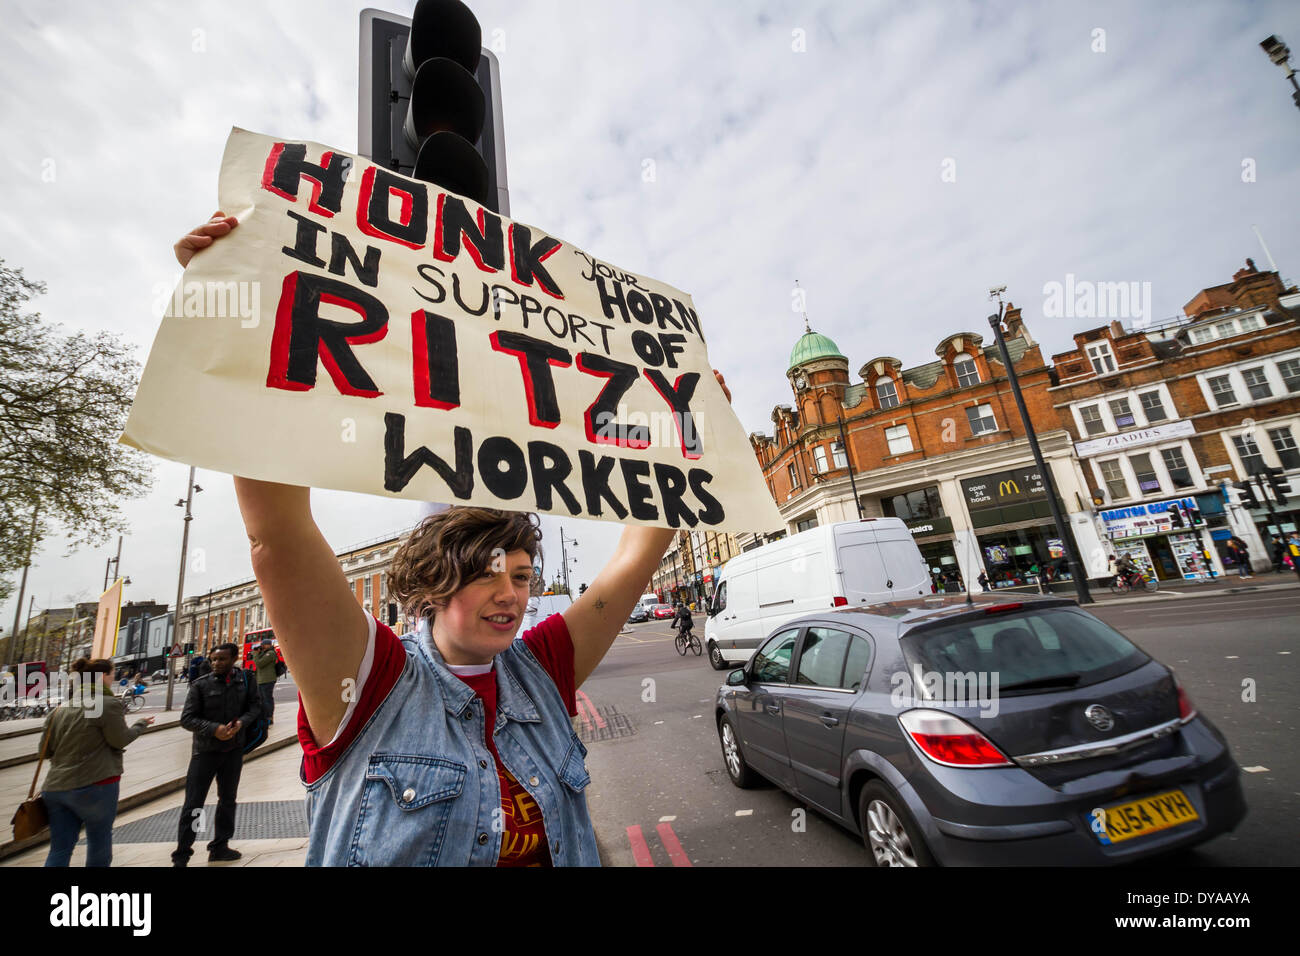 London, UK .11th Apr, 2014. Ritzy Cinema in Brixton closed as union members take strike action Credit:  Guy Corbishley/Alamy Live News - Stock Image